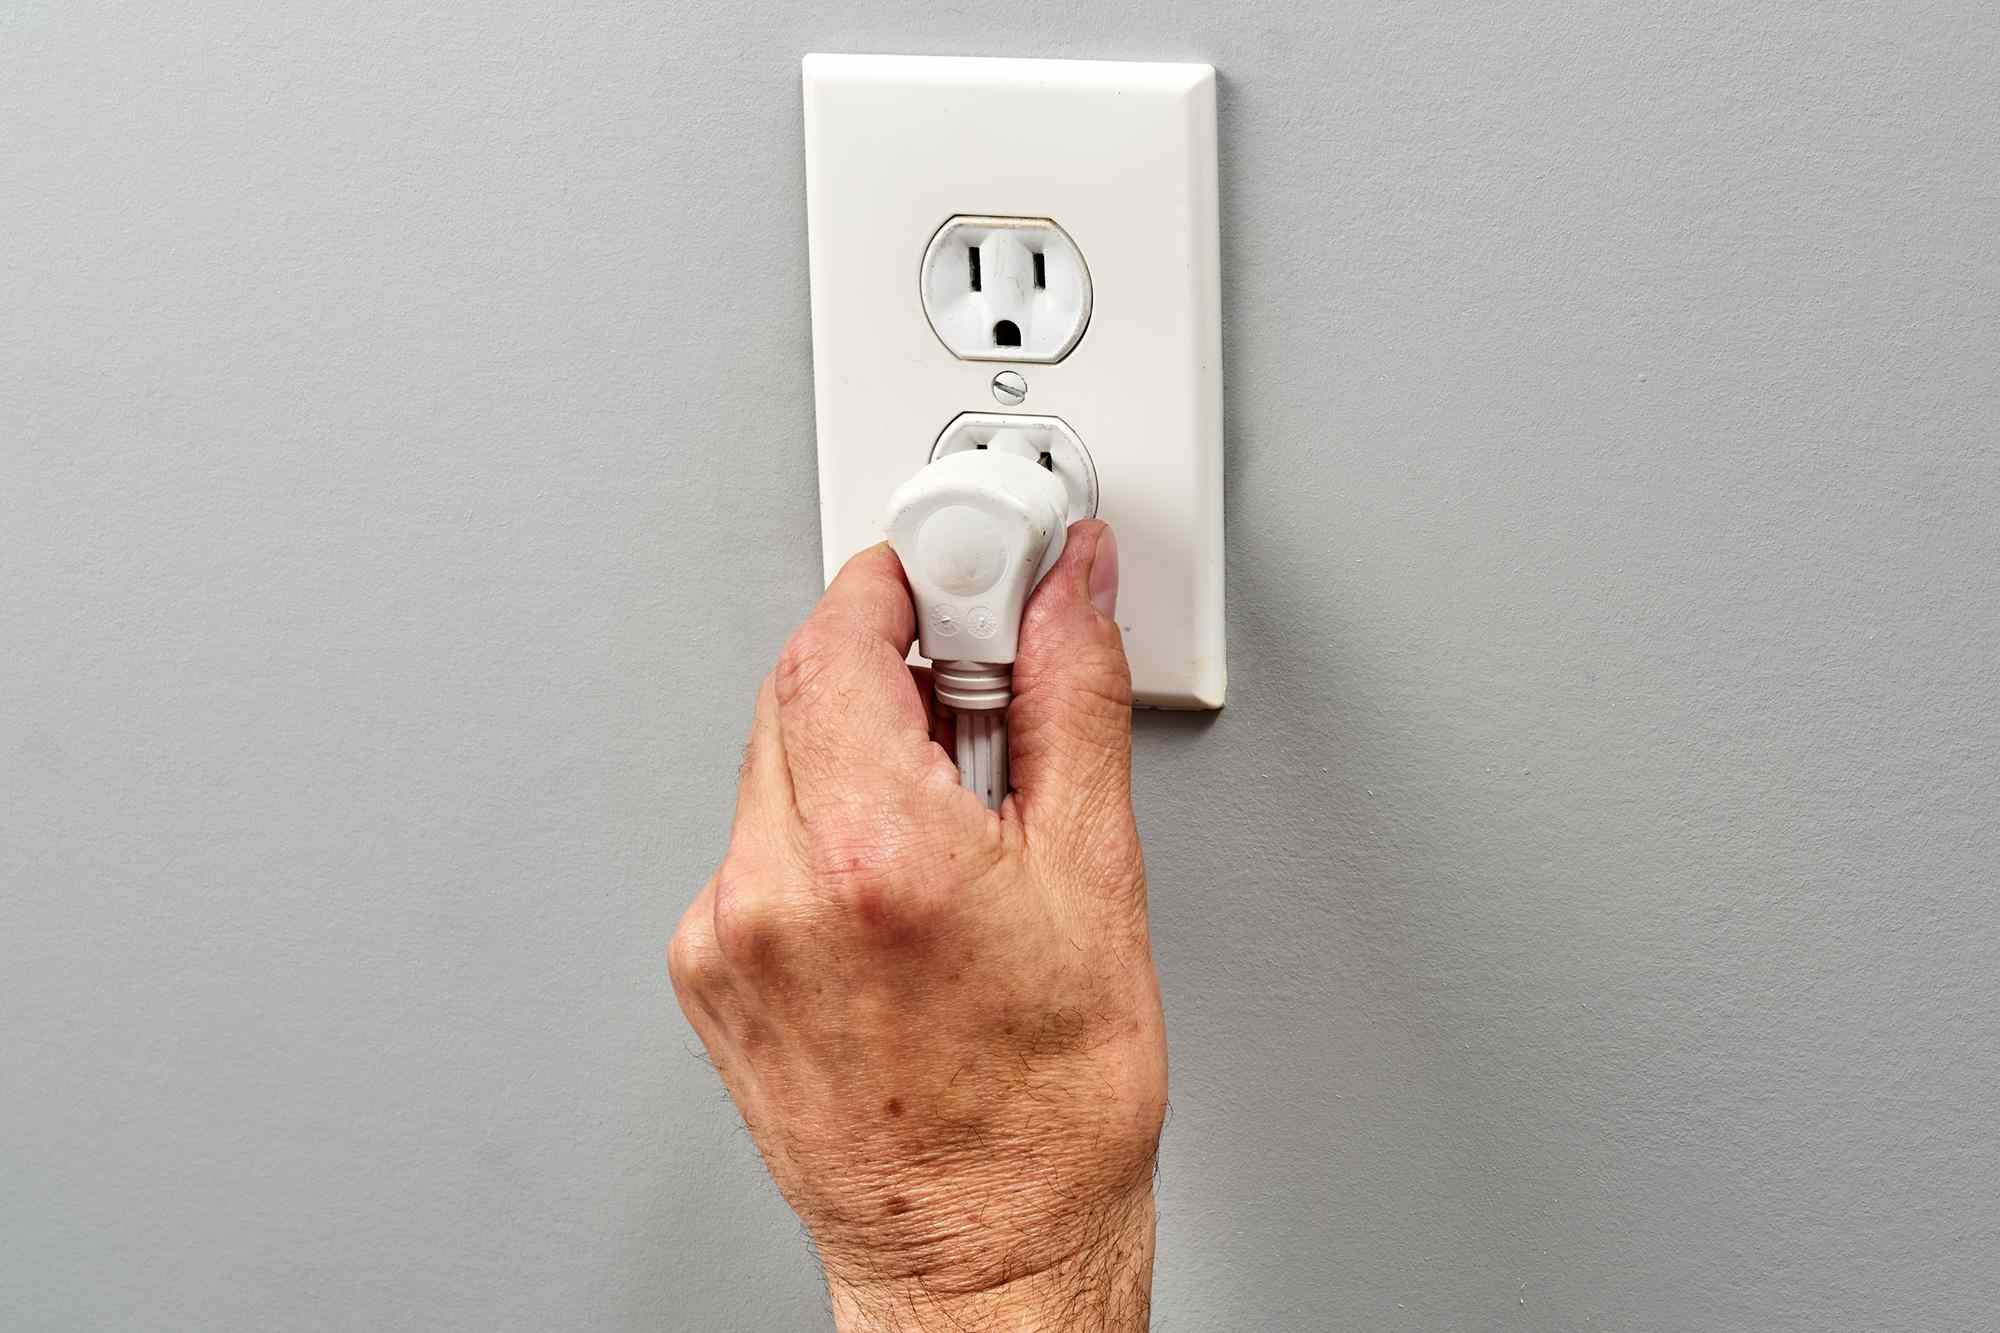 Cord unplugged from warm wall outlet by hand